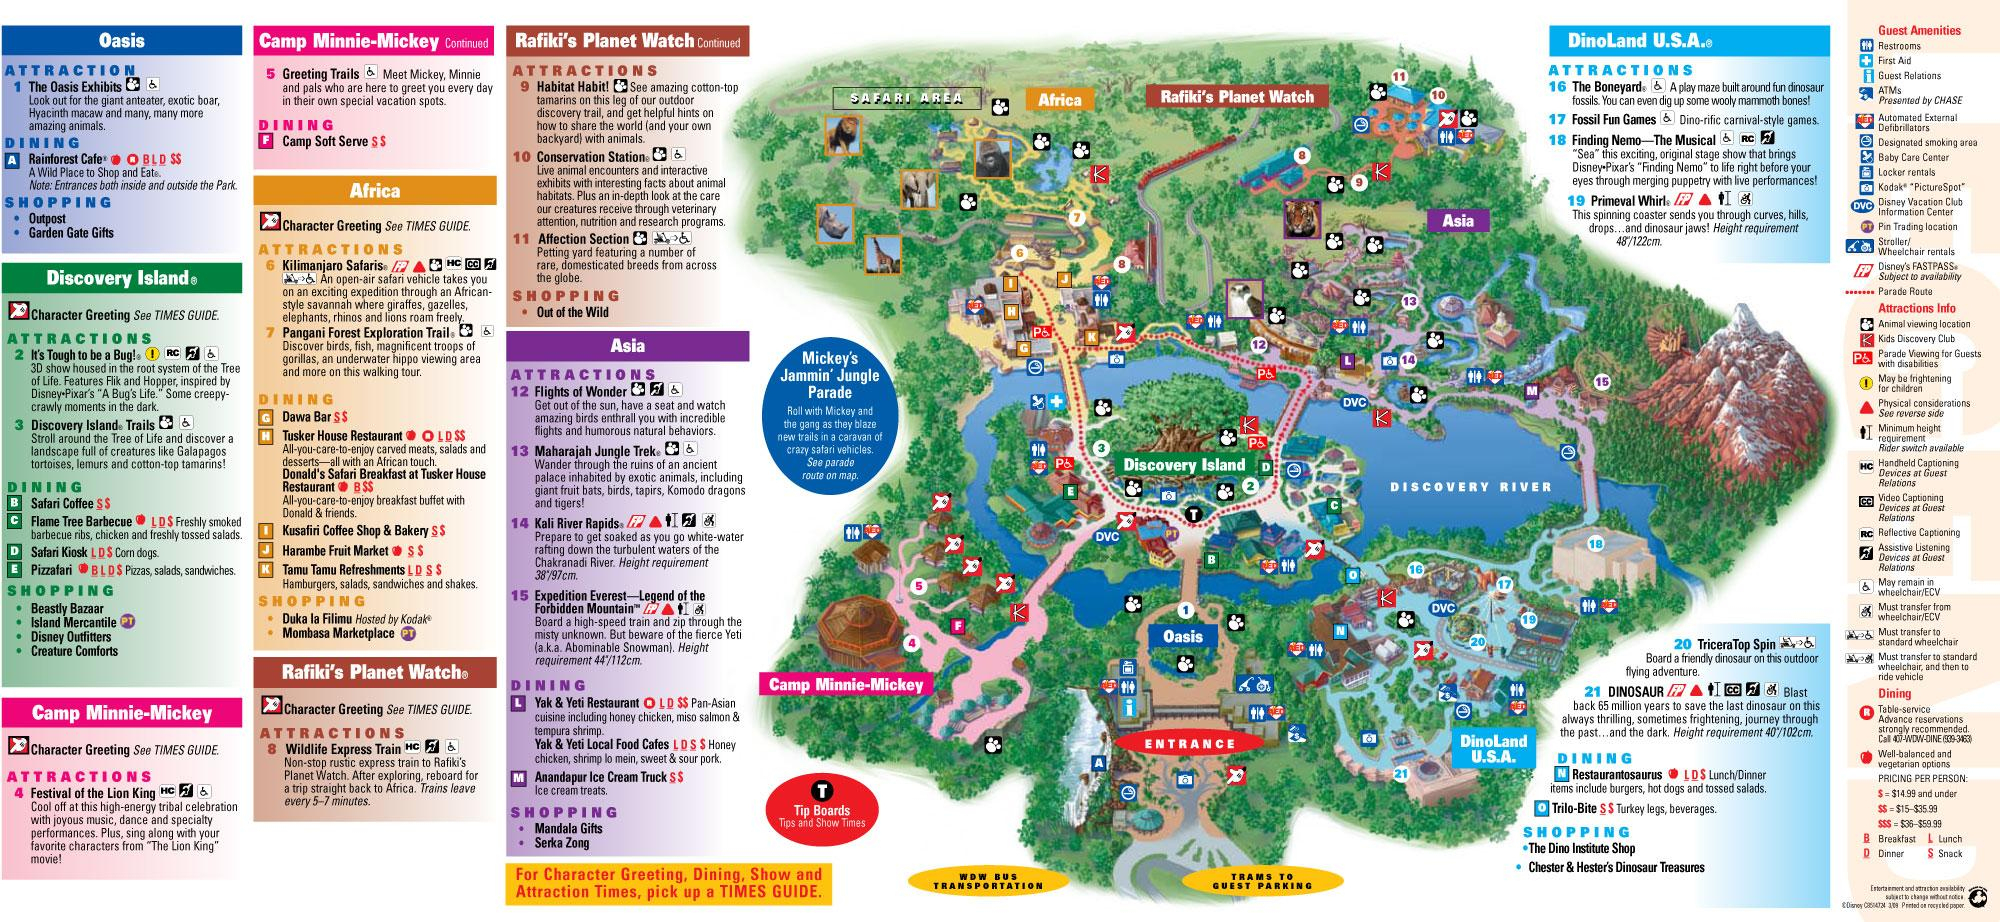 Disney World Resort Map 39 Best Disney S Art Of Animation Resort Aoa - Map Of Disney Florida Hotels